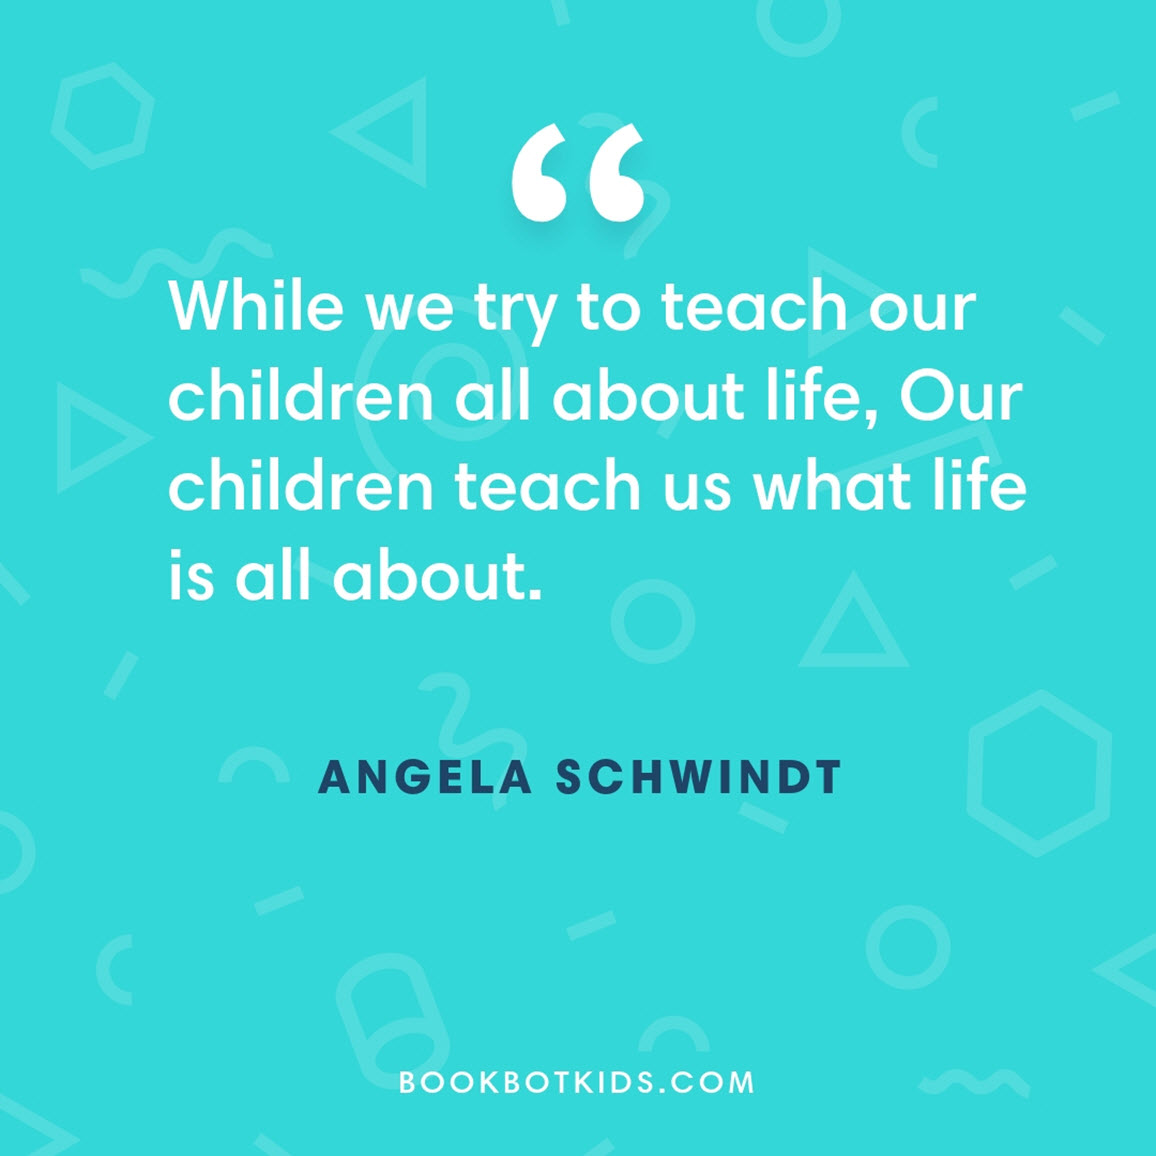 While we try to teach our children all about life, Our children teach us what life is all about. – Angela Schwindt